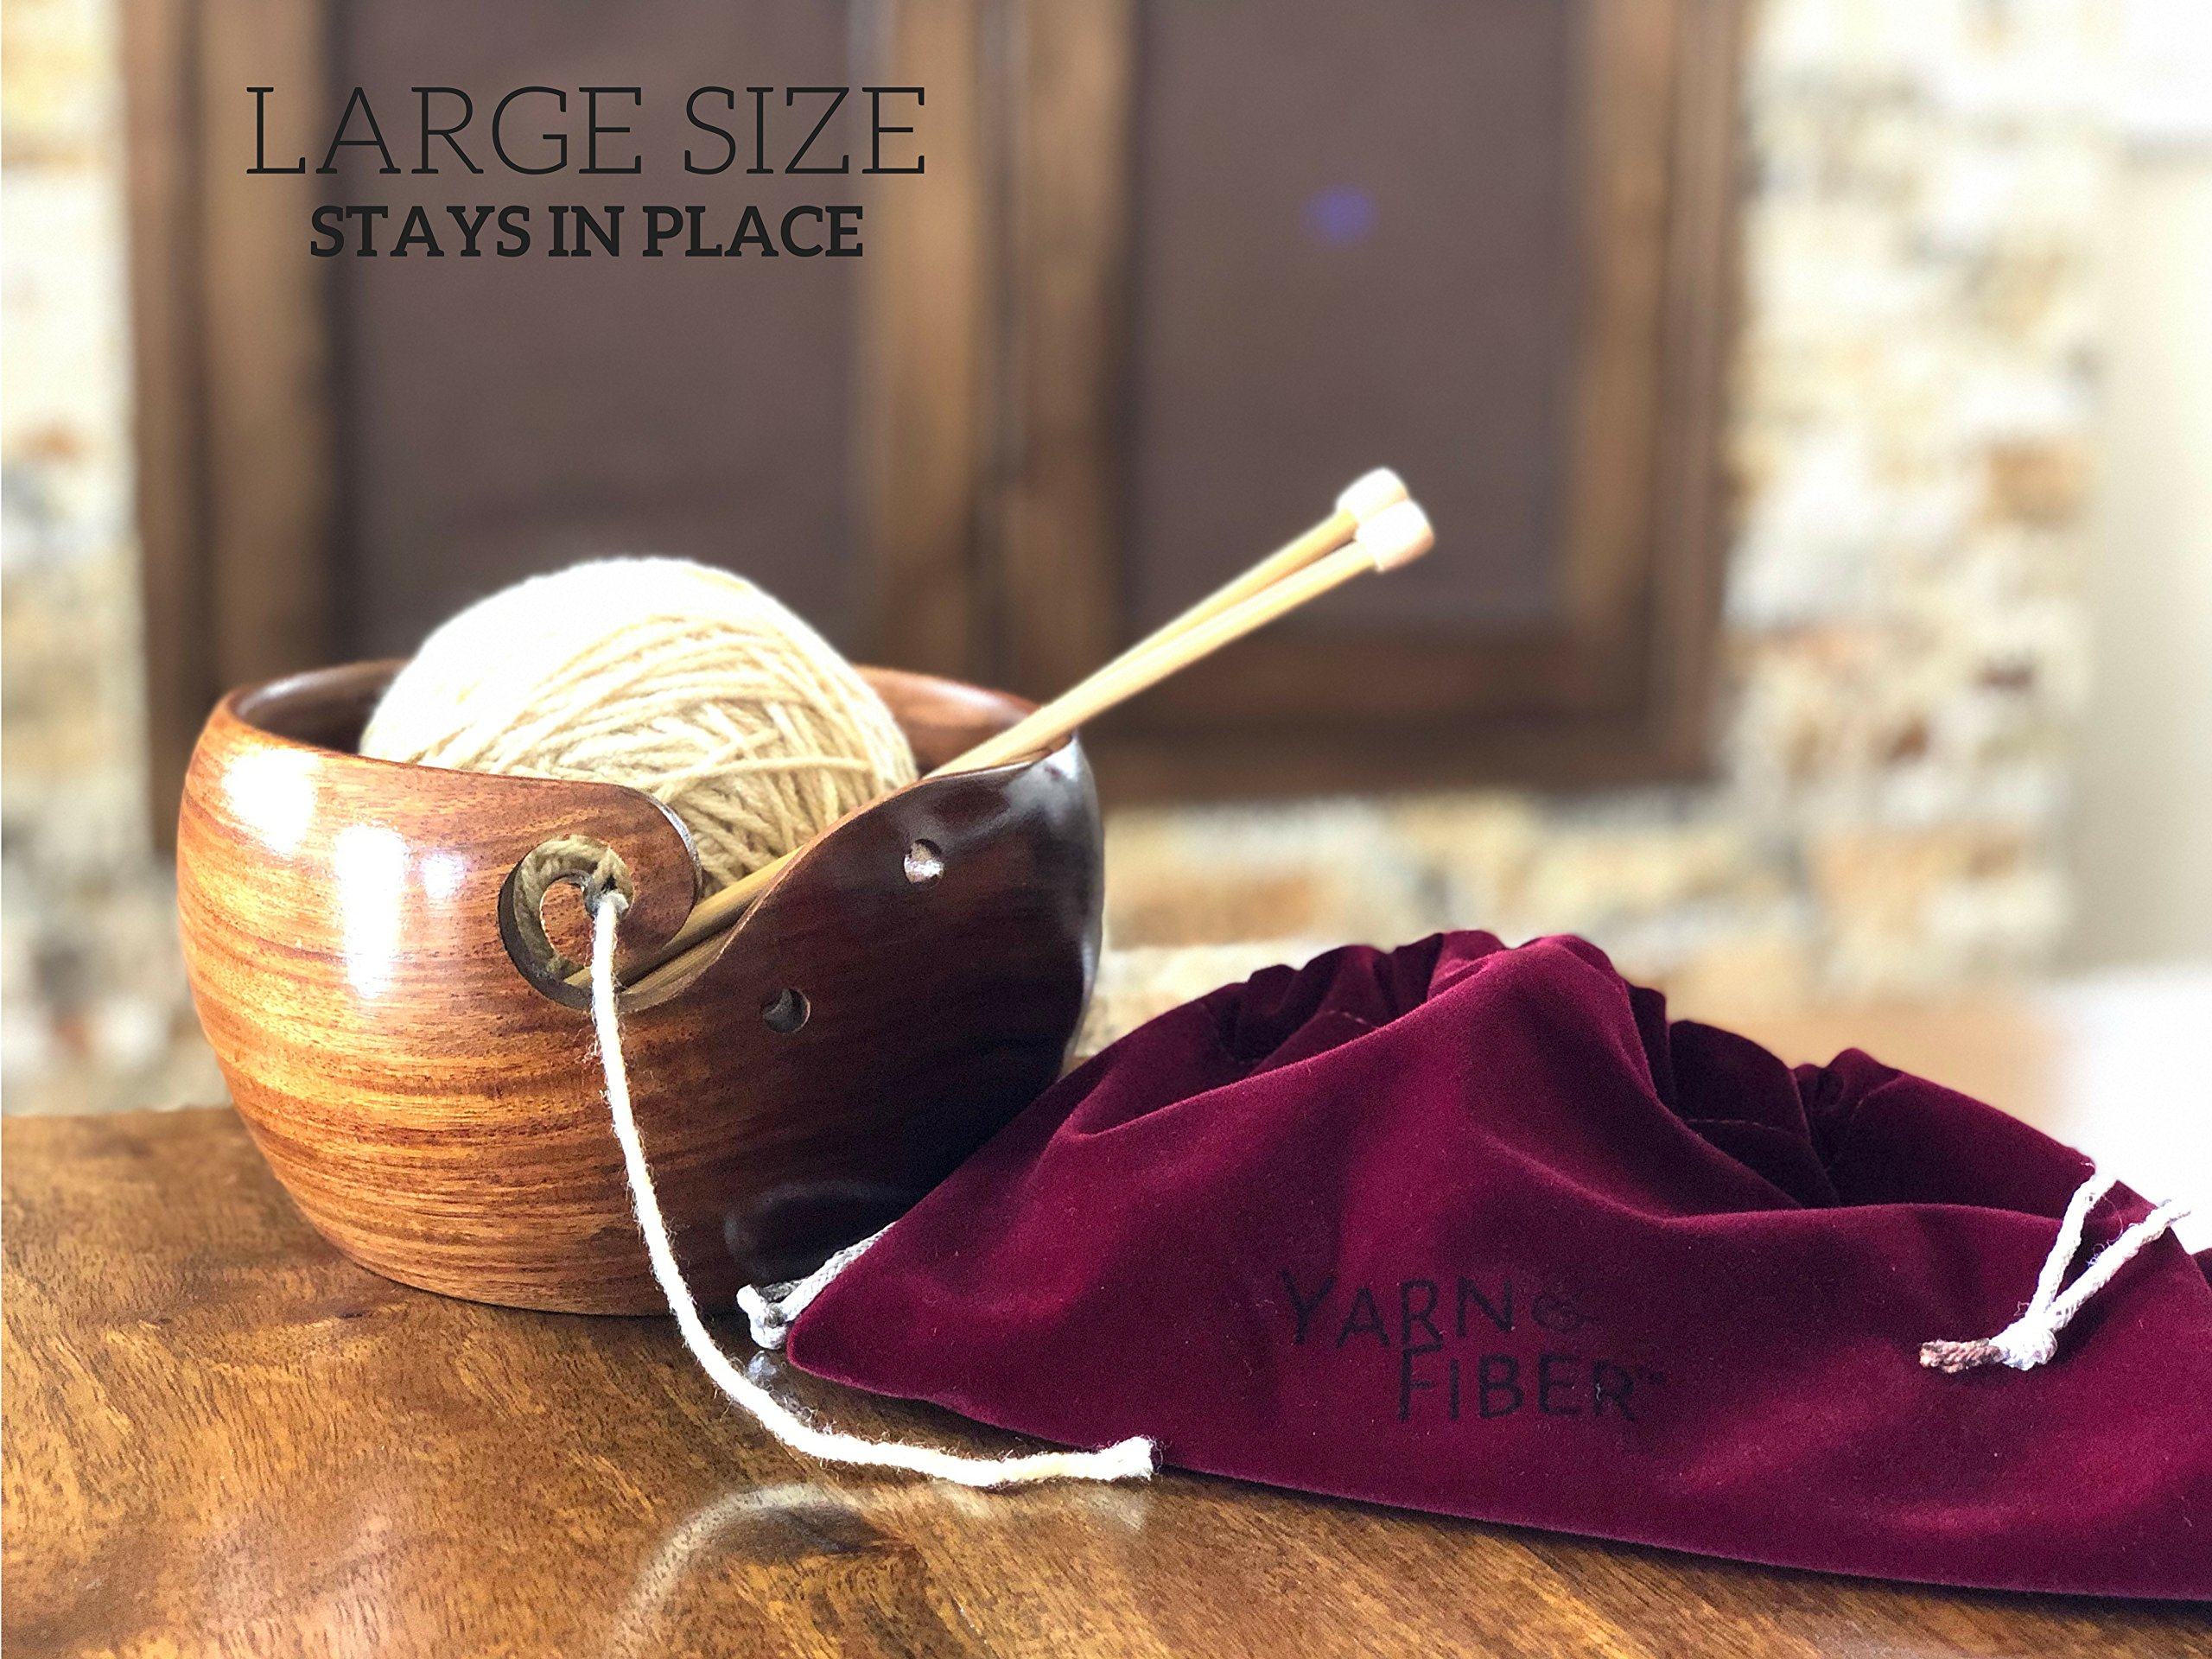 Yarn & Fiber Premium Yarn Bowl | Large 7x4 Inch with Travel Bag | Smooth Handcrafted Rosewood, Stop Yarn From Rolling, Knitting and Crochet Yarn Holder by Yarn & Fiber (Image #2)